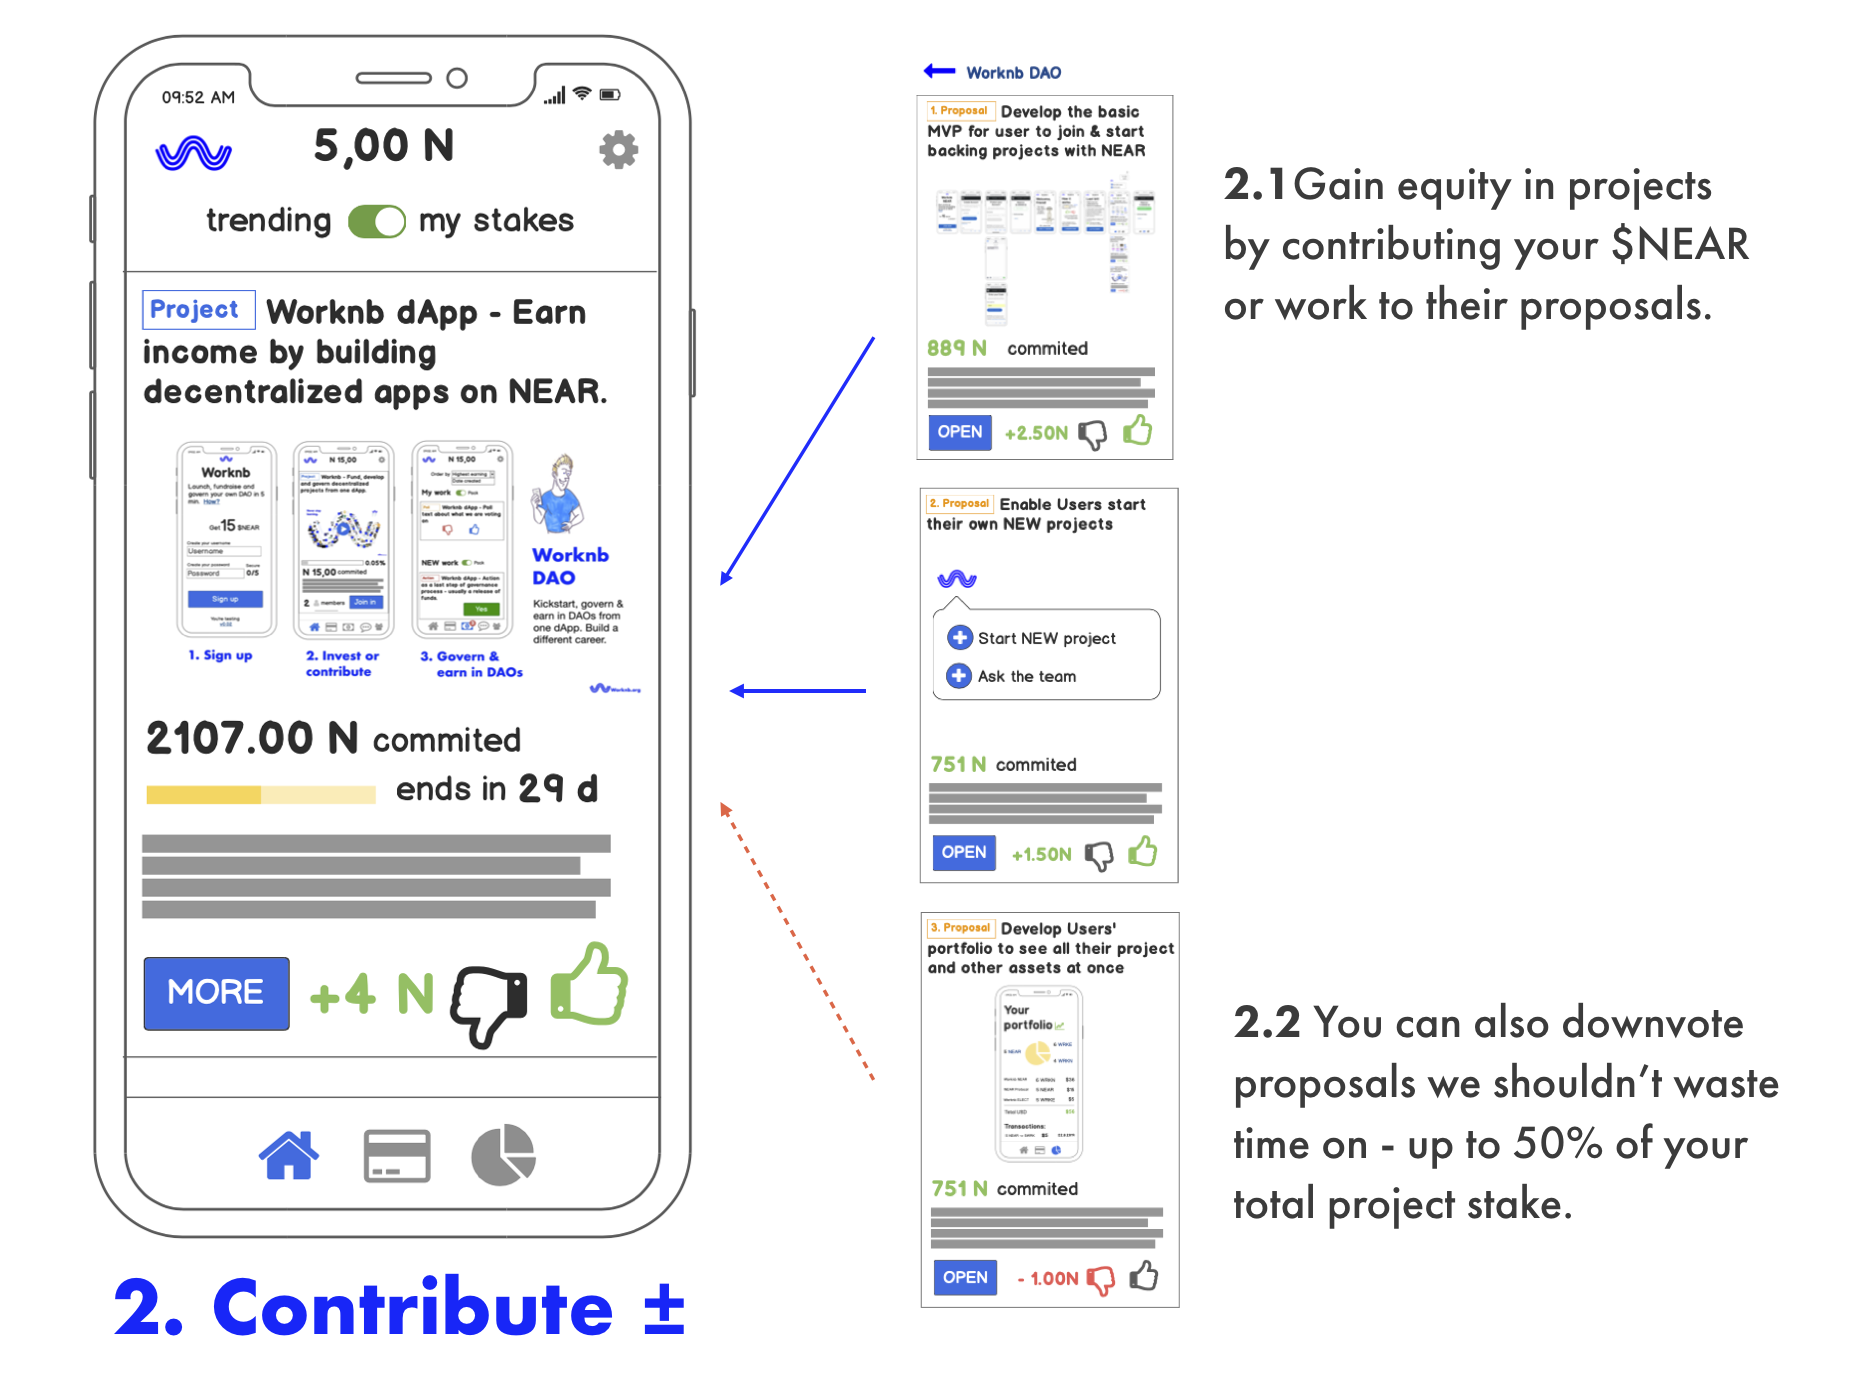 Worknb dApp - Contribute to projects and proposals you like